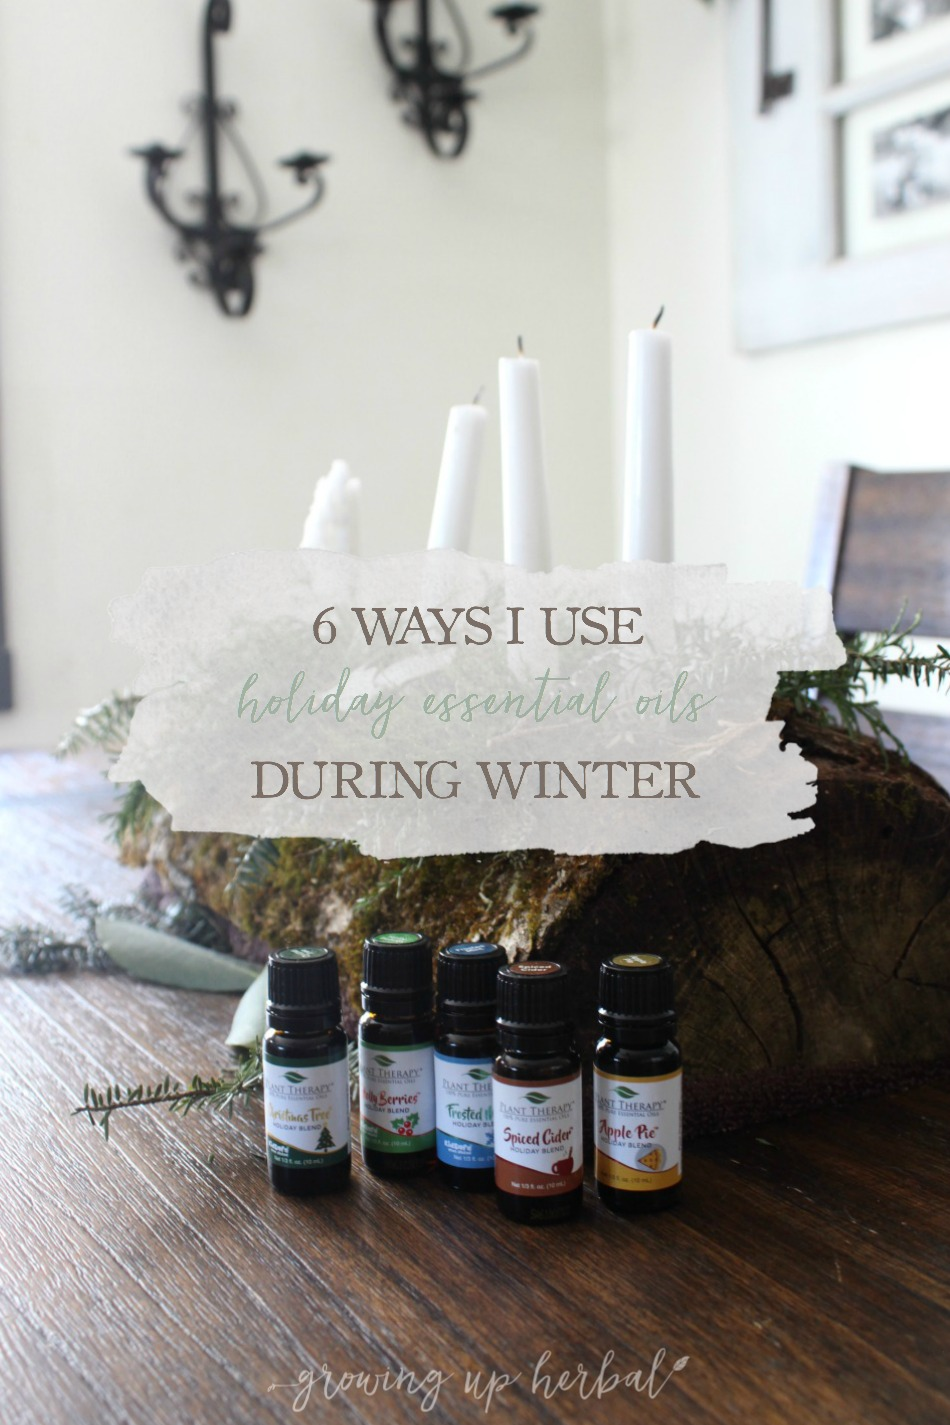 6 Ways I Use Holiday Essential Oils During Winter | Growing Up Herbal | Learn how I use holiday essential oils to not only make the atmosphere of our home more festive during the holidays but to support our health at the same time!